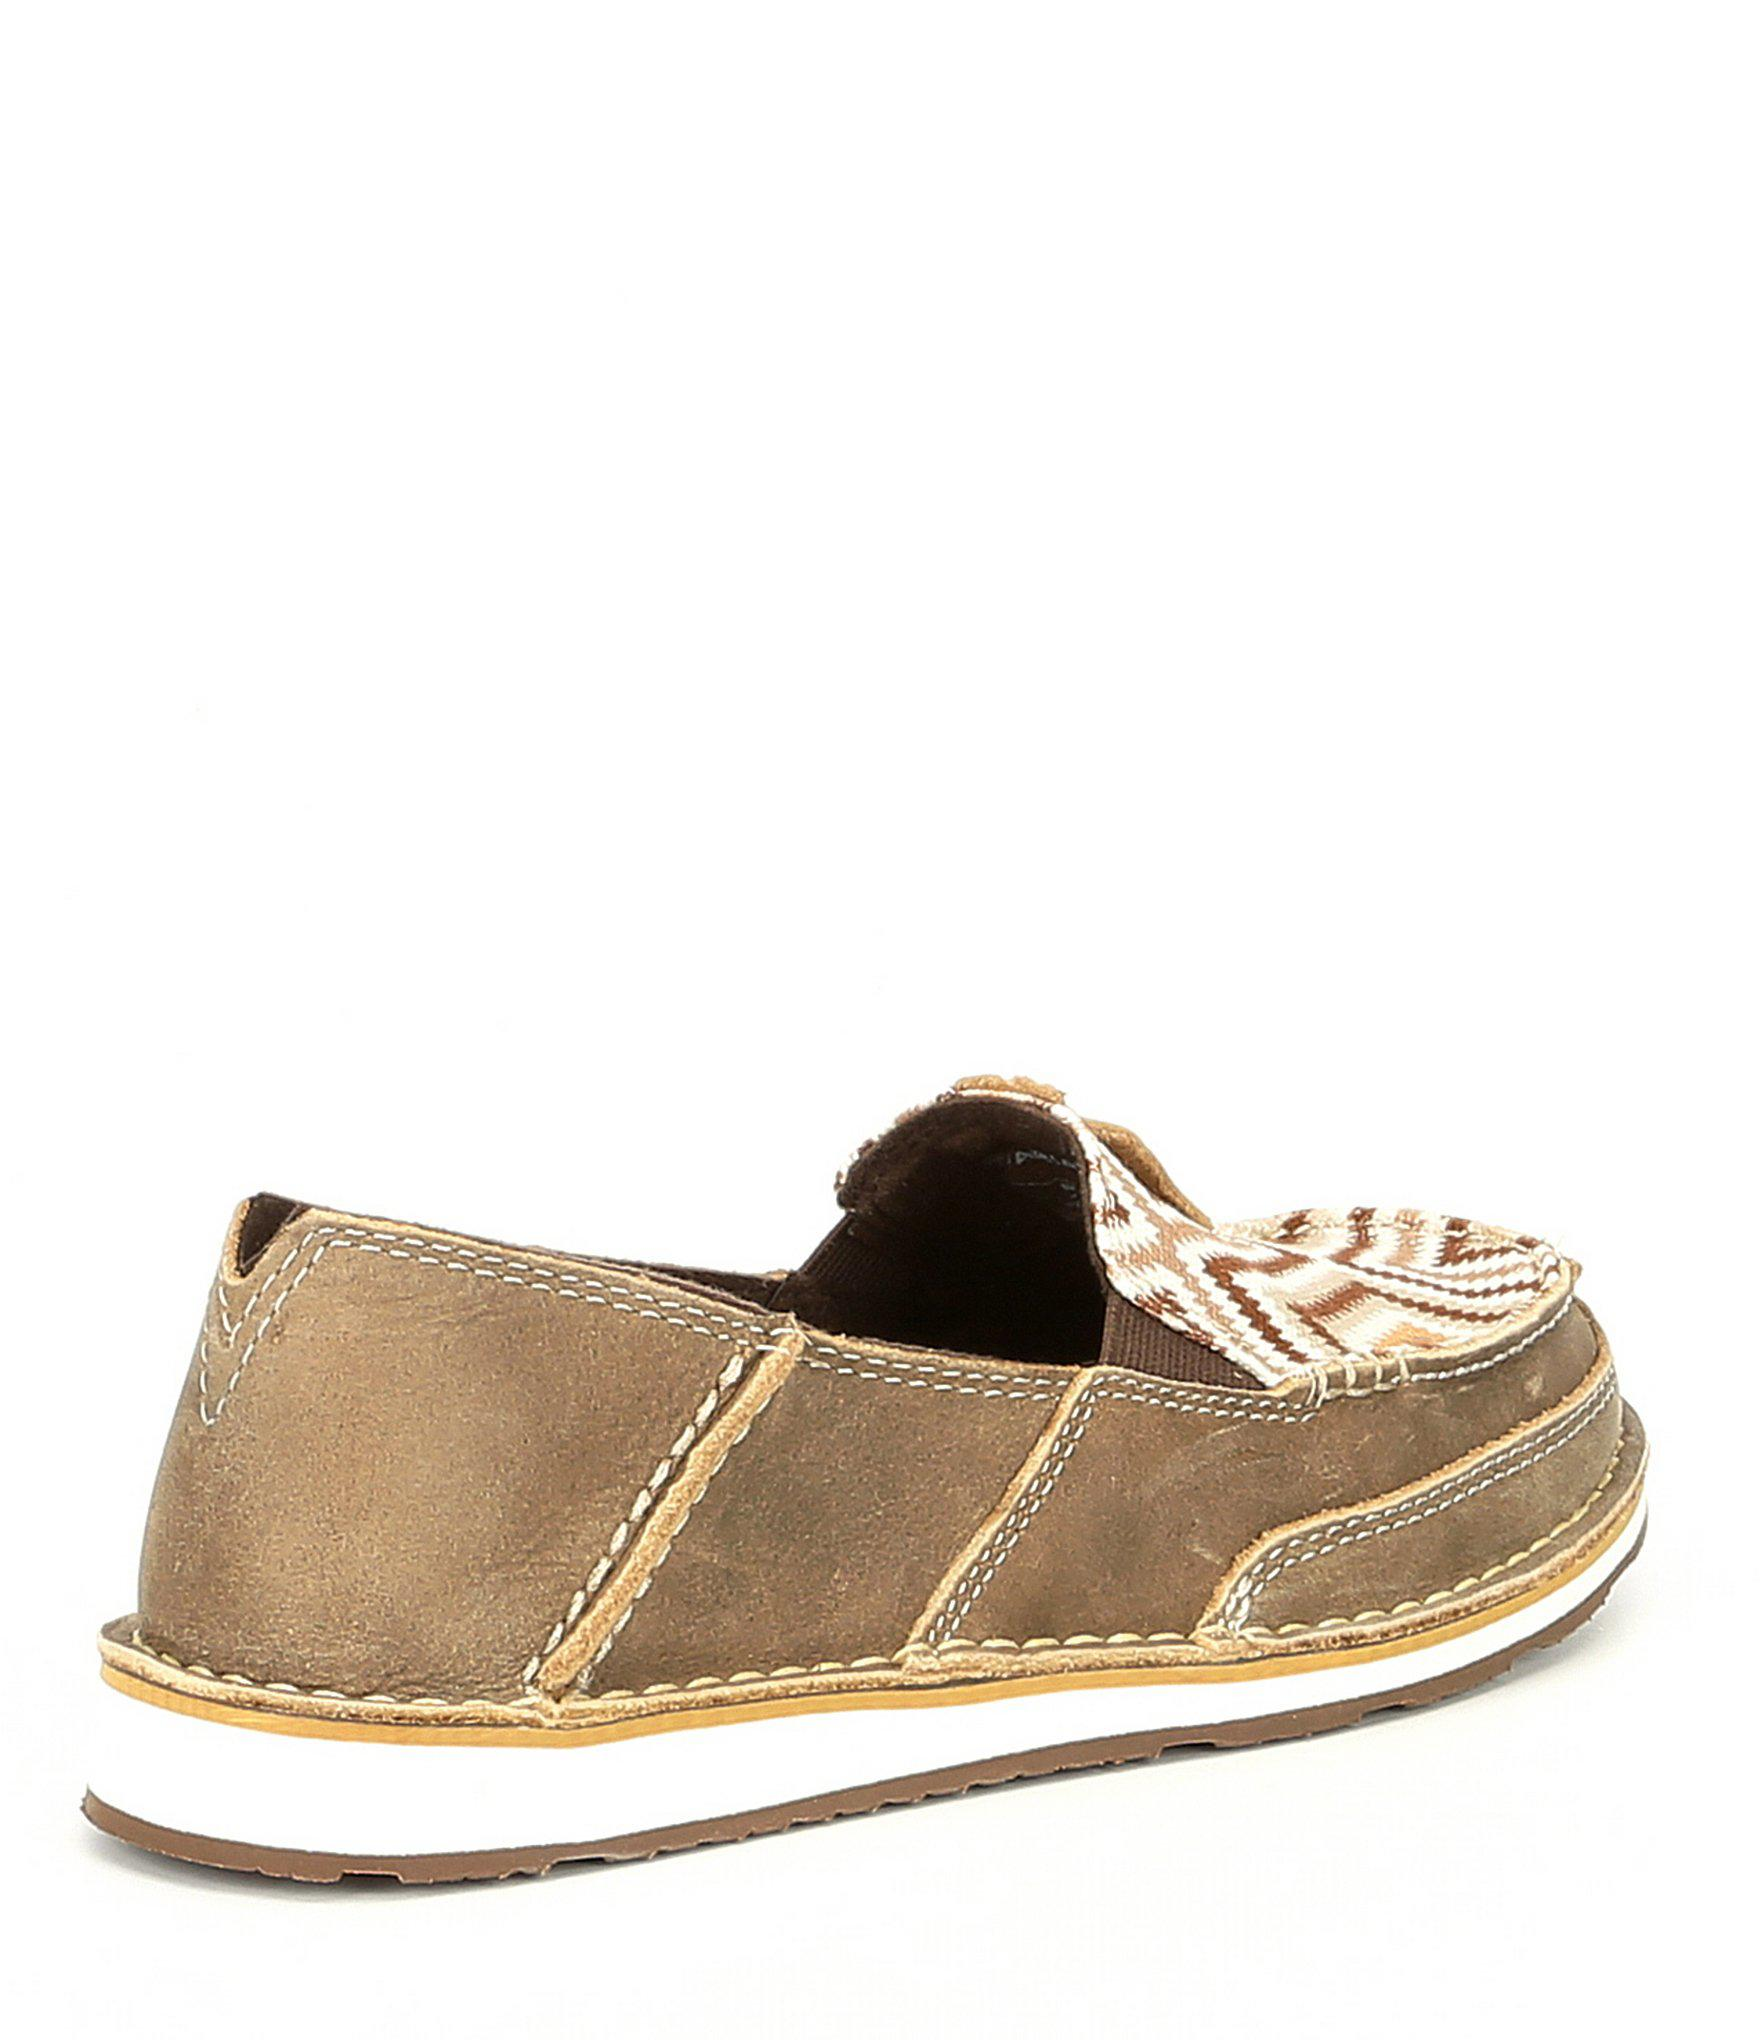 e9377839168 Ariat - Brown Cruiser Leather Slip Ons - Lyst. View fullscreen